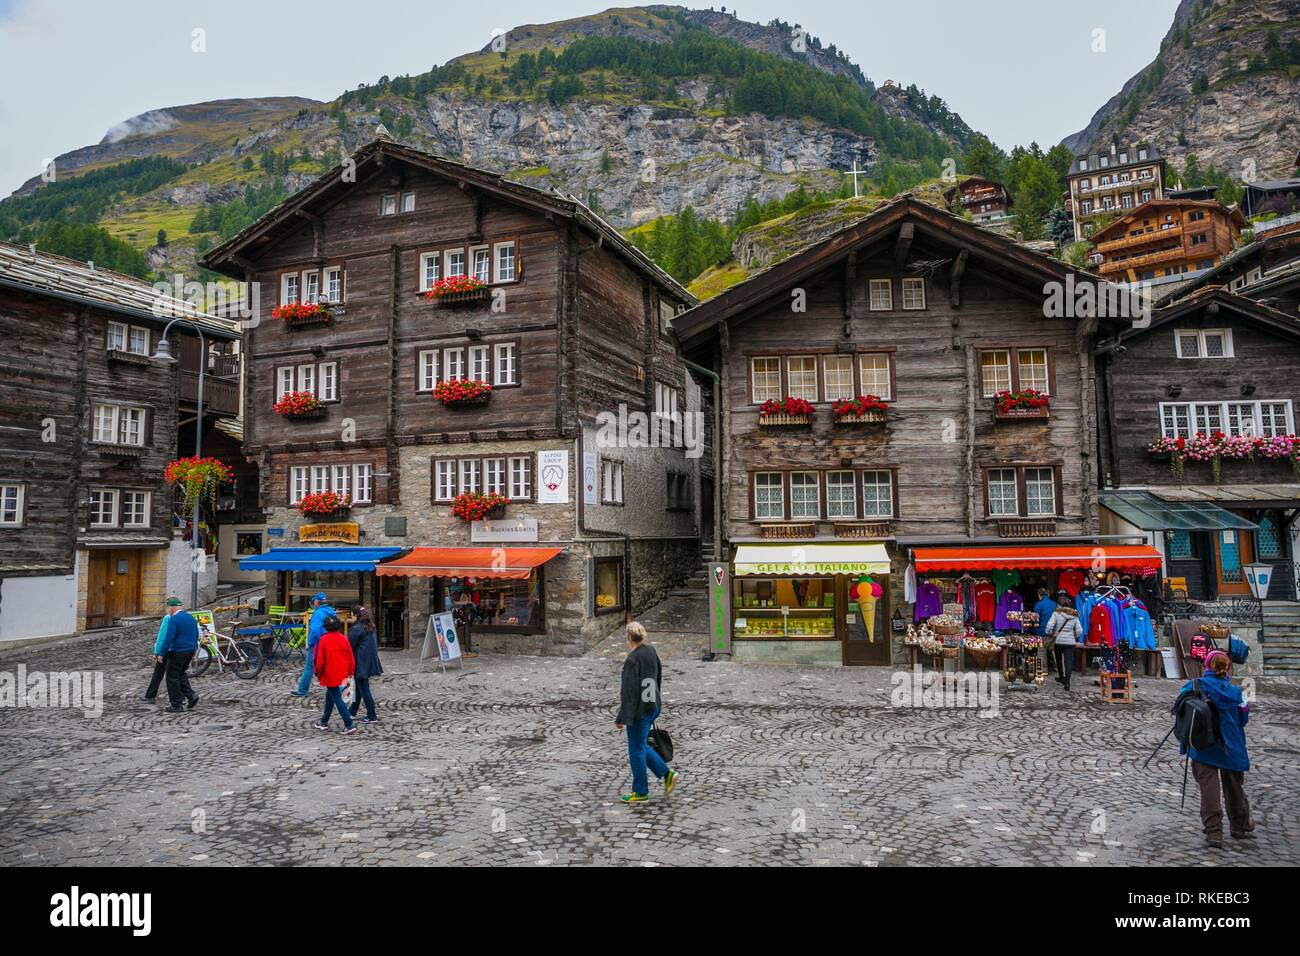 On the left Peter Taugwalders house (father and son.) They climbed Cervino mountain in the first ascent in 1865. Zermatt. Swiss Alps. Valais. - Stock Image